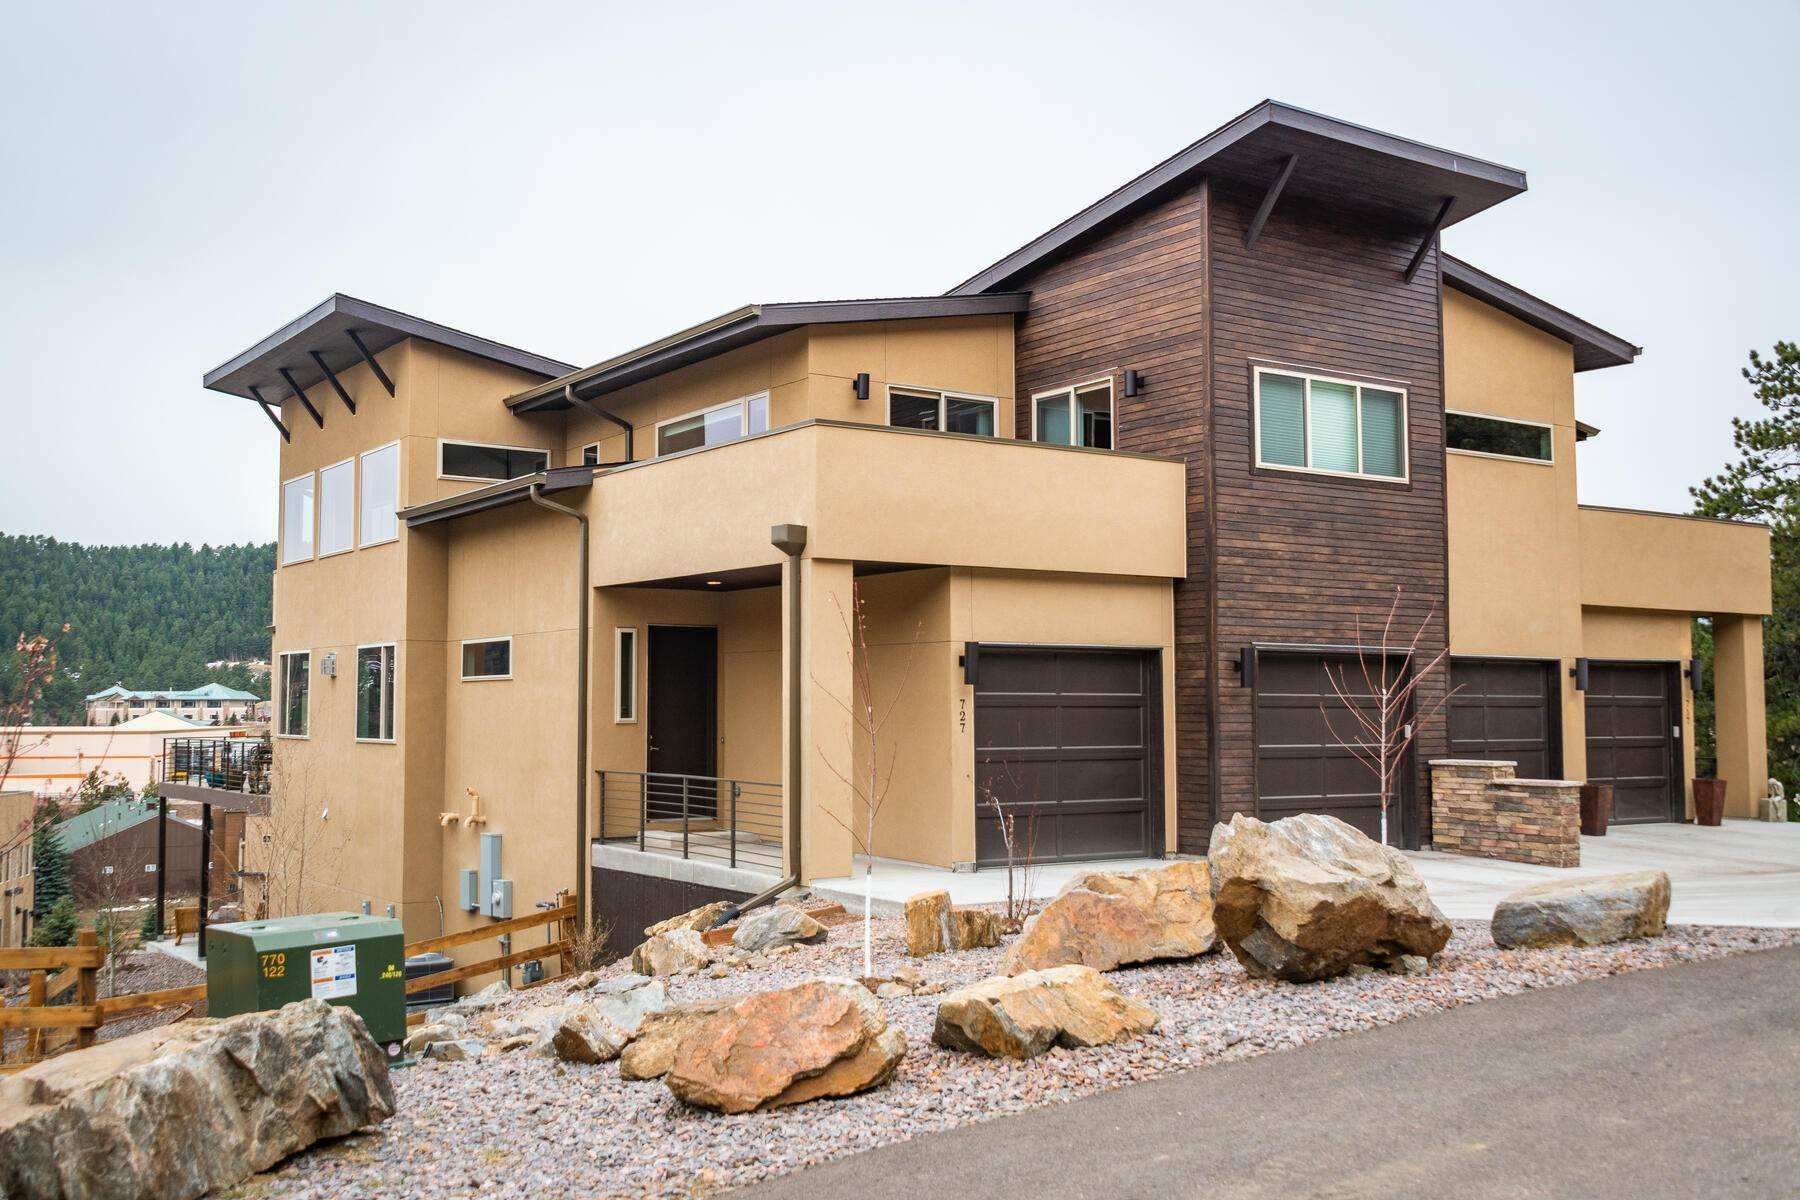 Duplex Homes for Sale at Exquisite & Carefully Curated With Extensive Upgrades 727 Dreamcatcher Lane Evergreen, Colorado 80439 United States